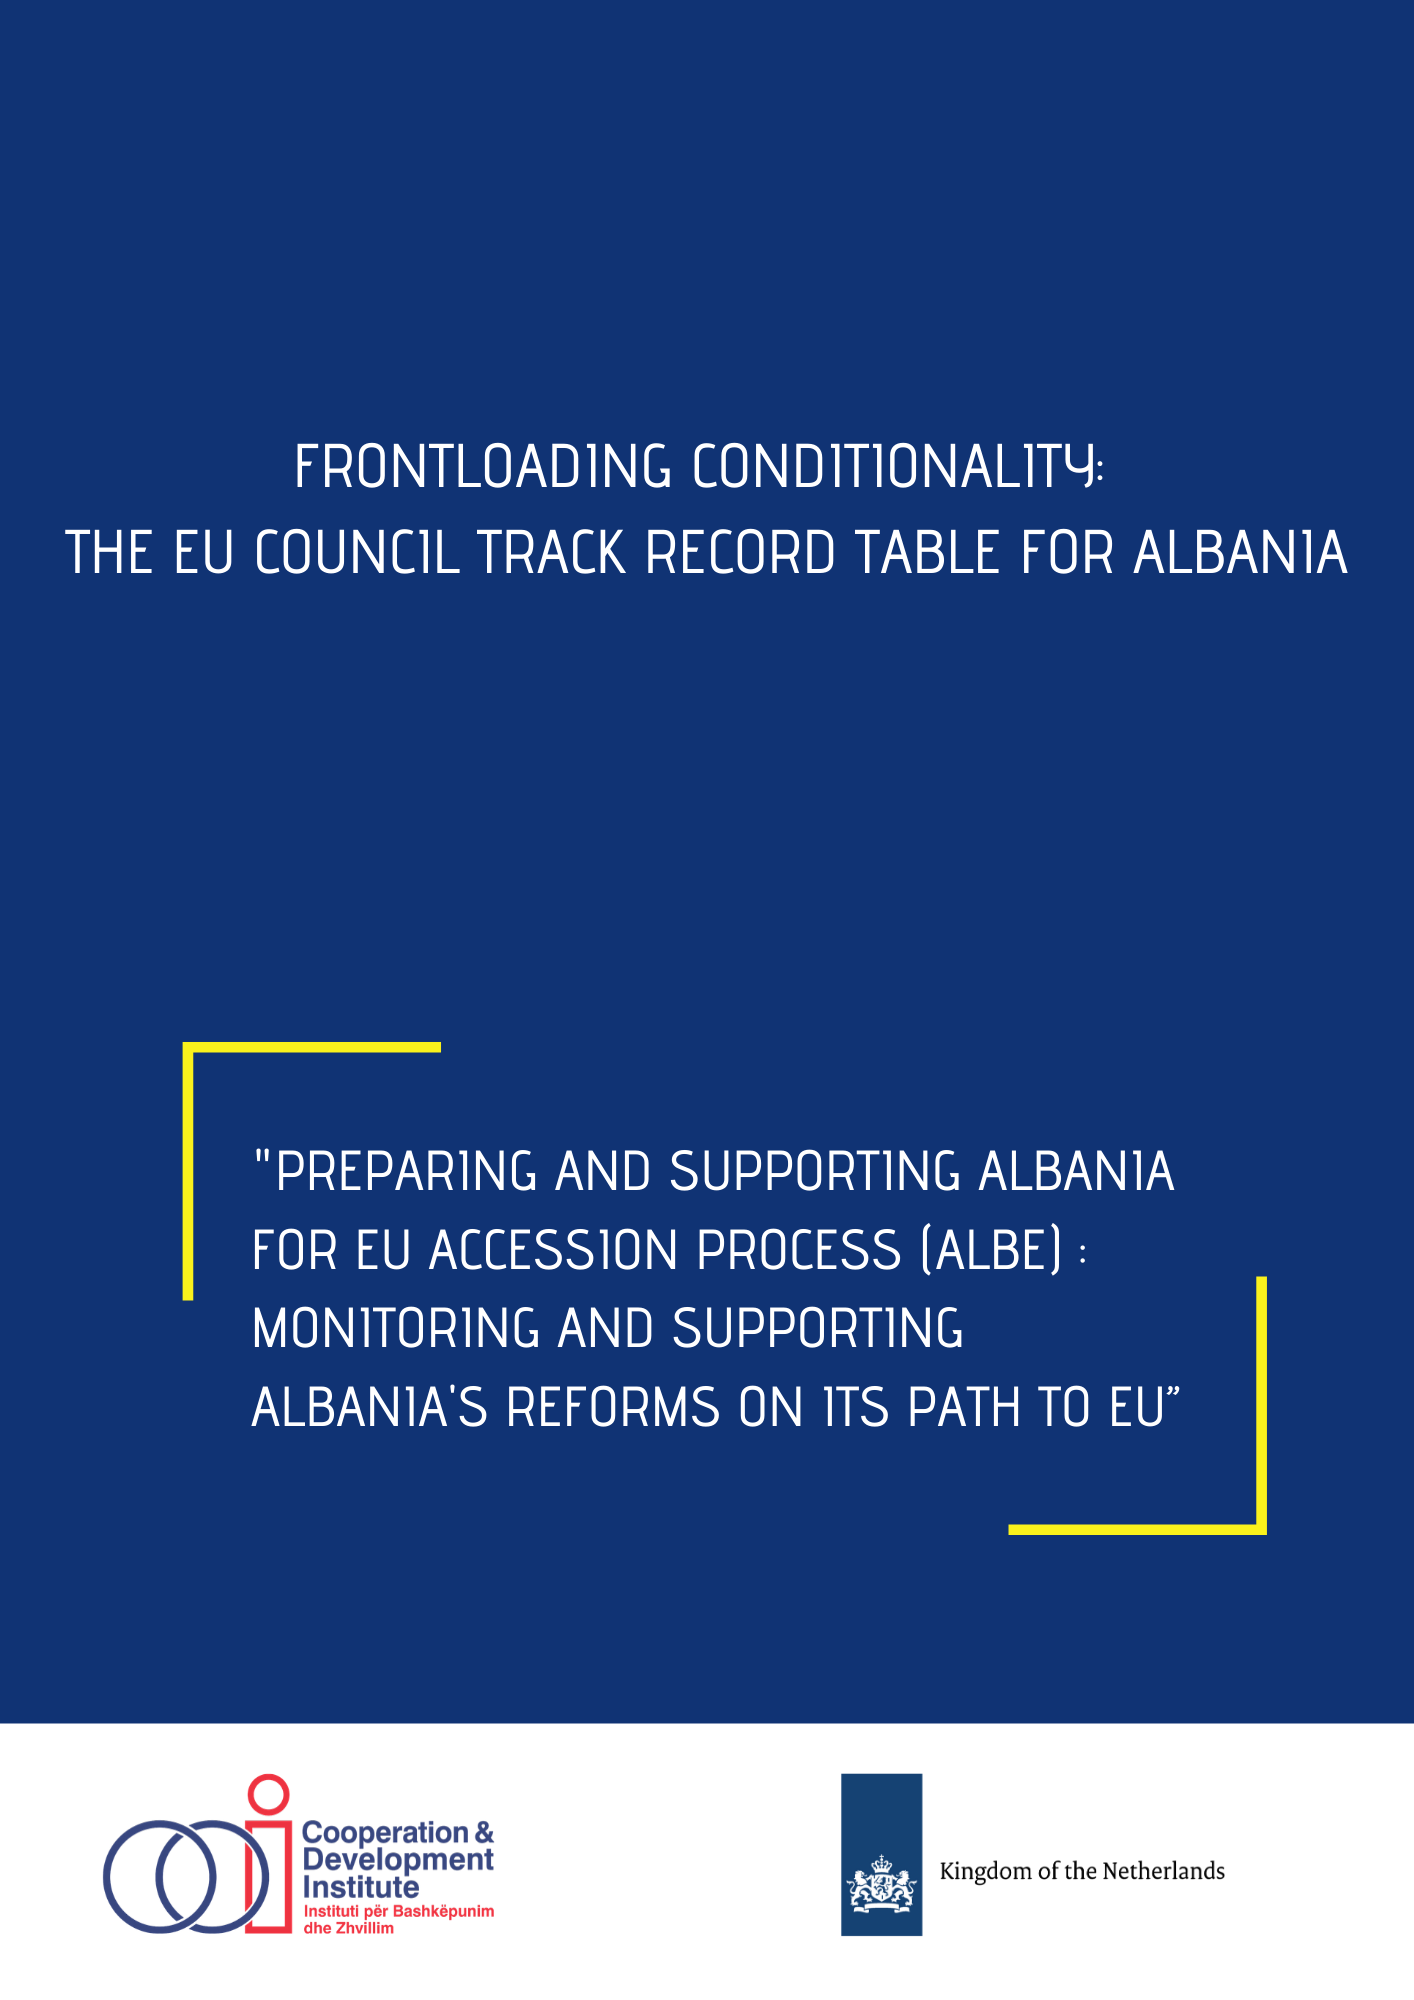 Frontloading Conditionality: The EU Council Track Record Table for Albania